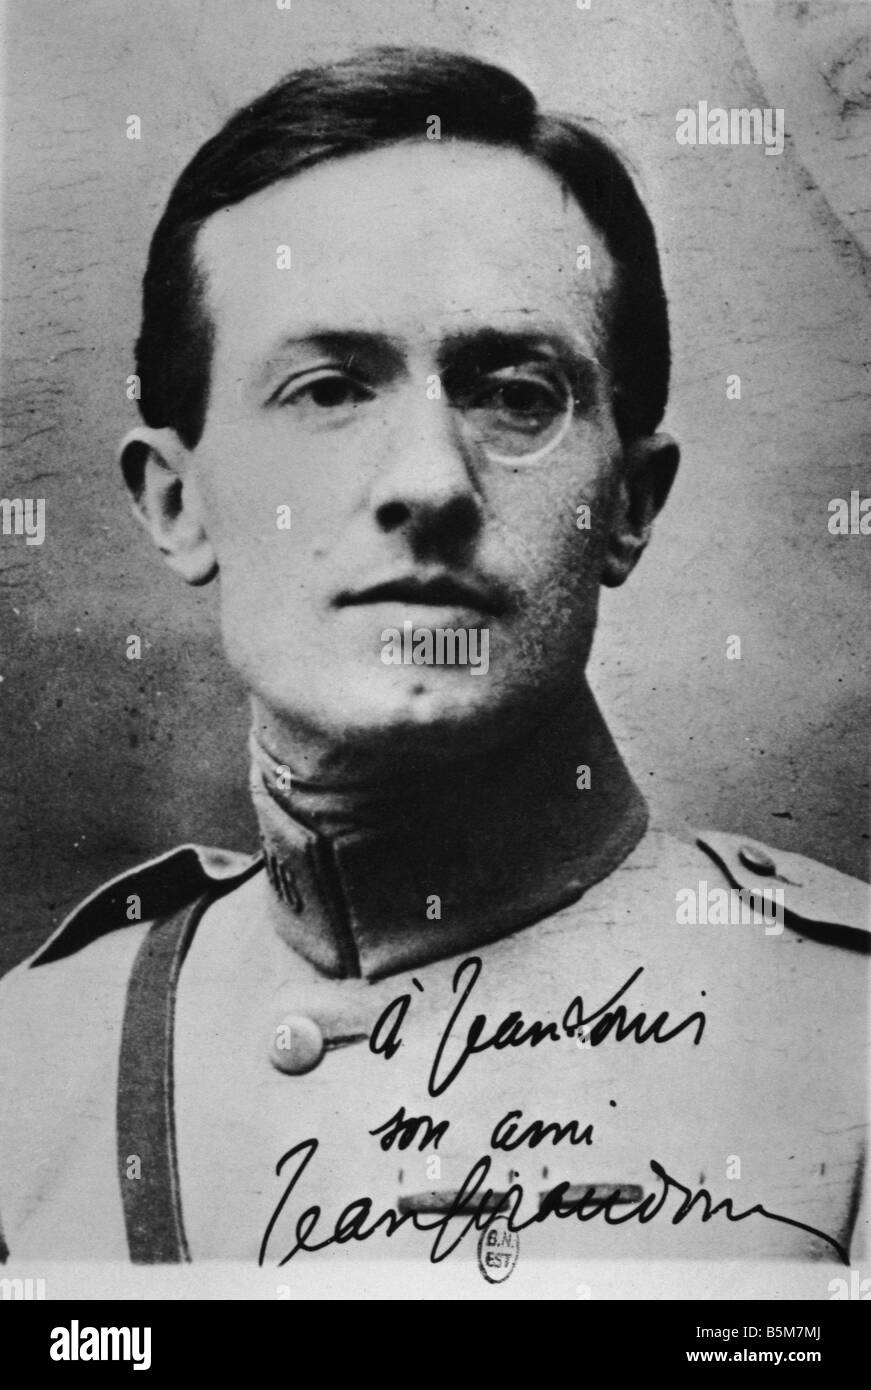 1FK 910 B1914 Jean Giraudoux Author Photo 1914 18 Giraudoux Jean French diplomat and author Bellac Haute Vienne - Stock Image